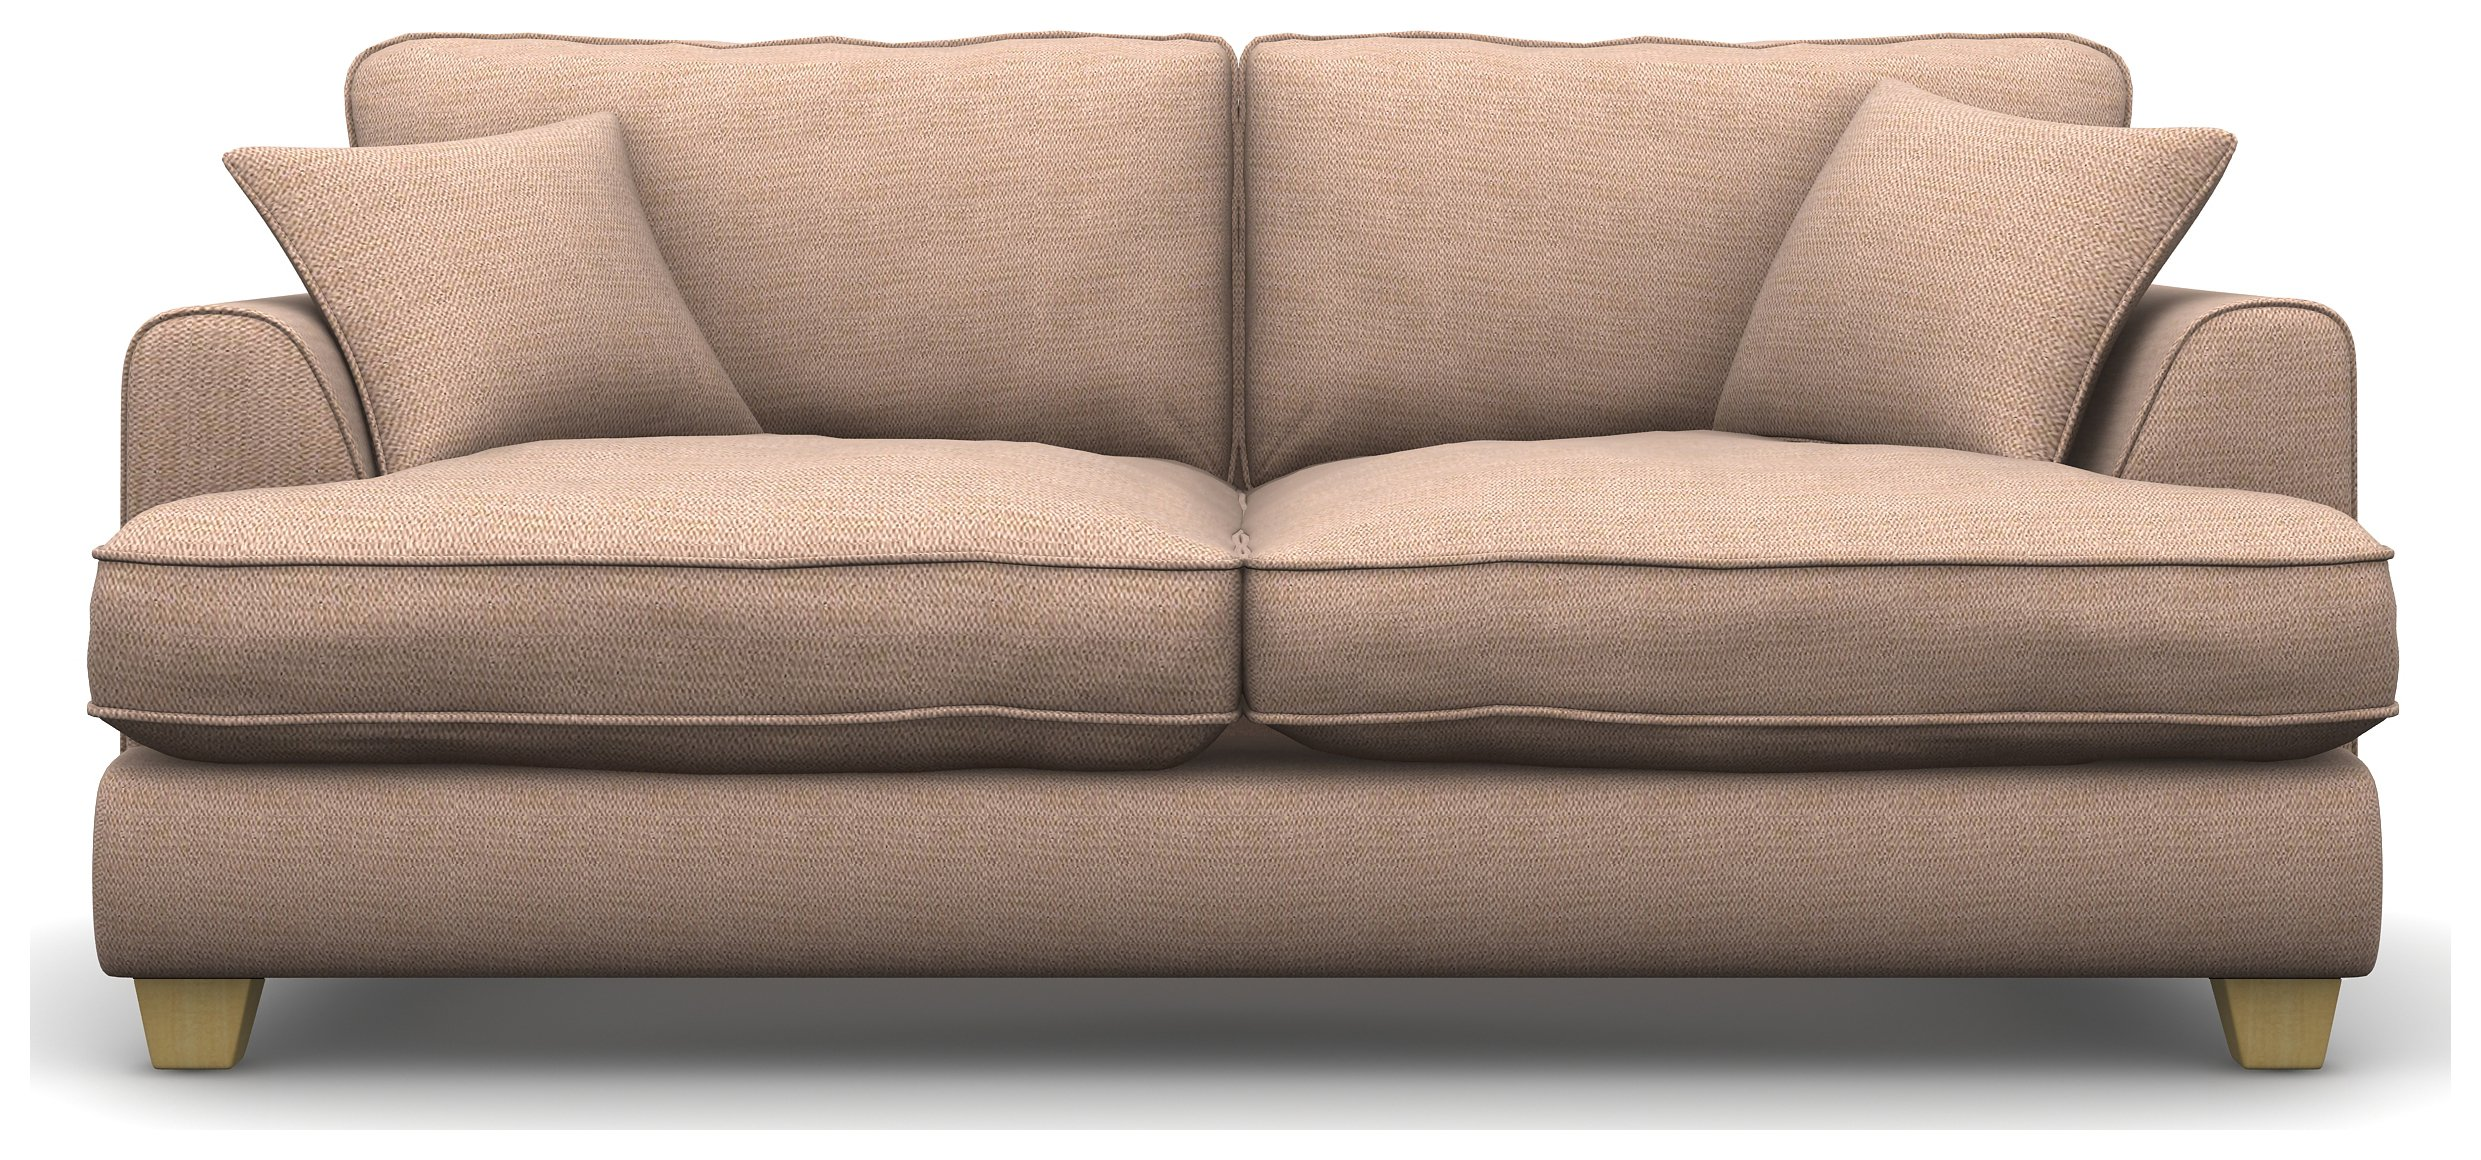 Heart of House Hampstead 3 Seater Fabric Sofa - Rose Pink